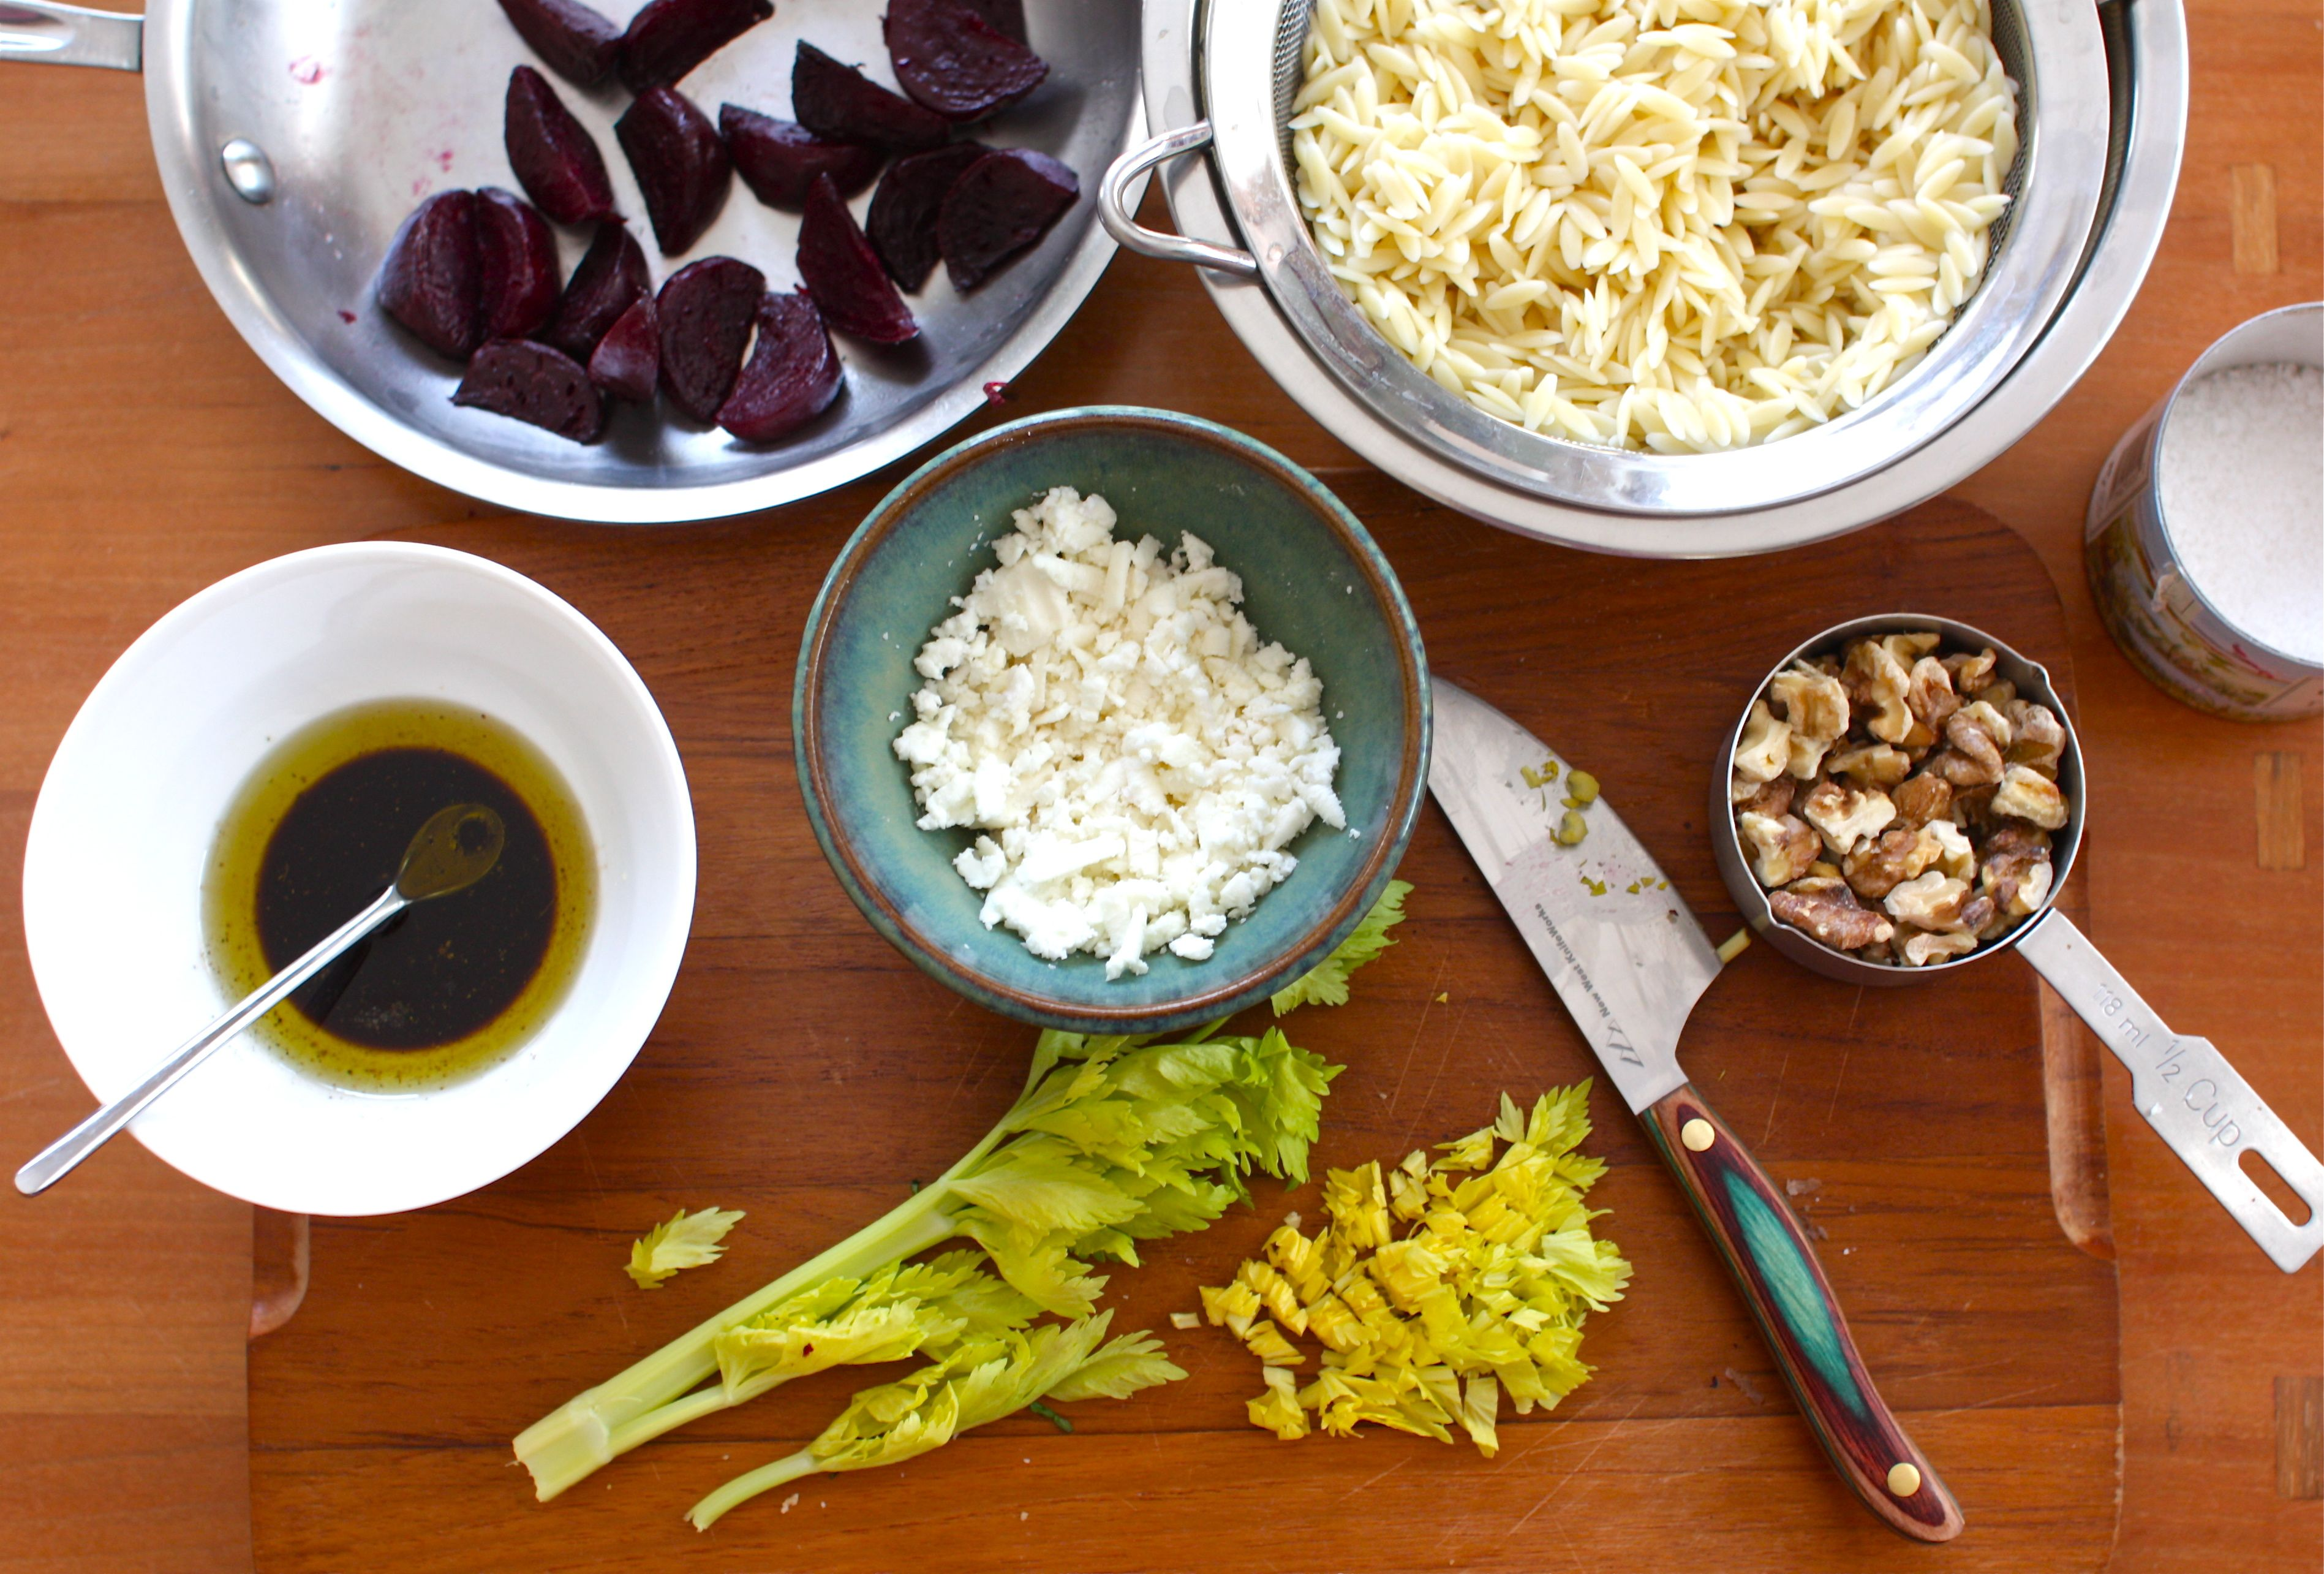 ... Ingredient: Beets (Recipe: Beet & Orzo Salad with Feta) | Simple Bites